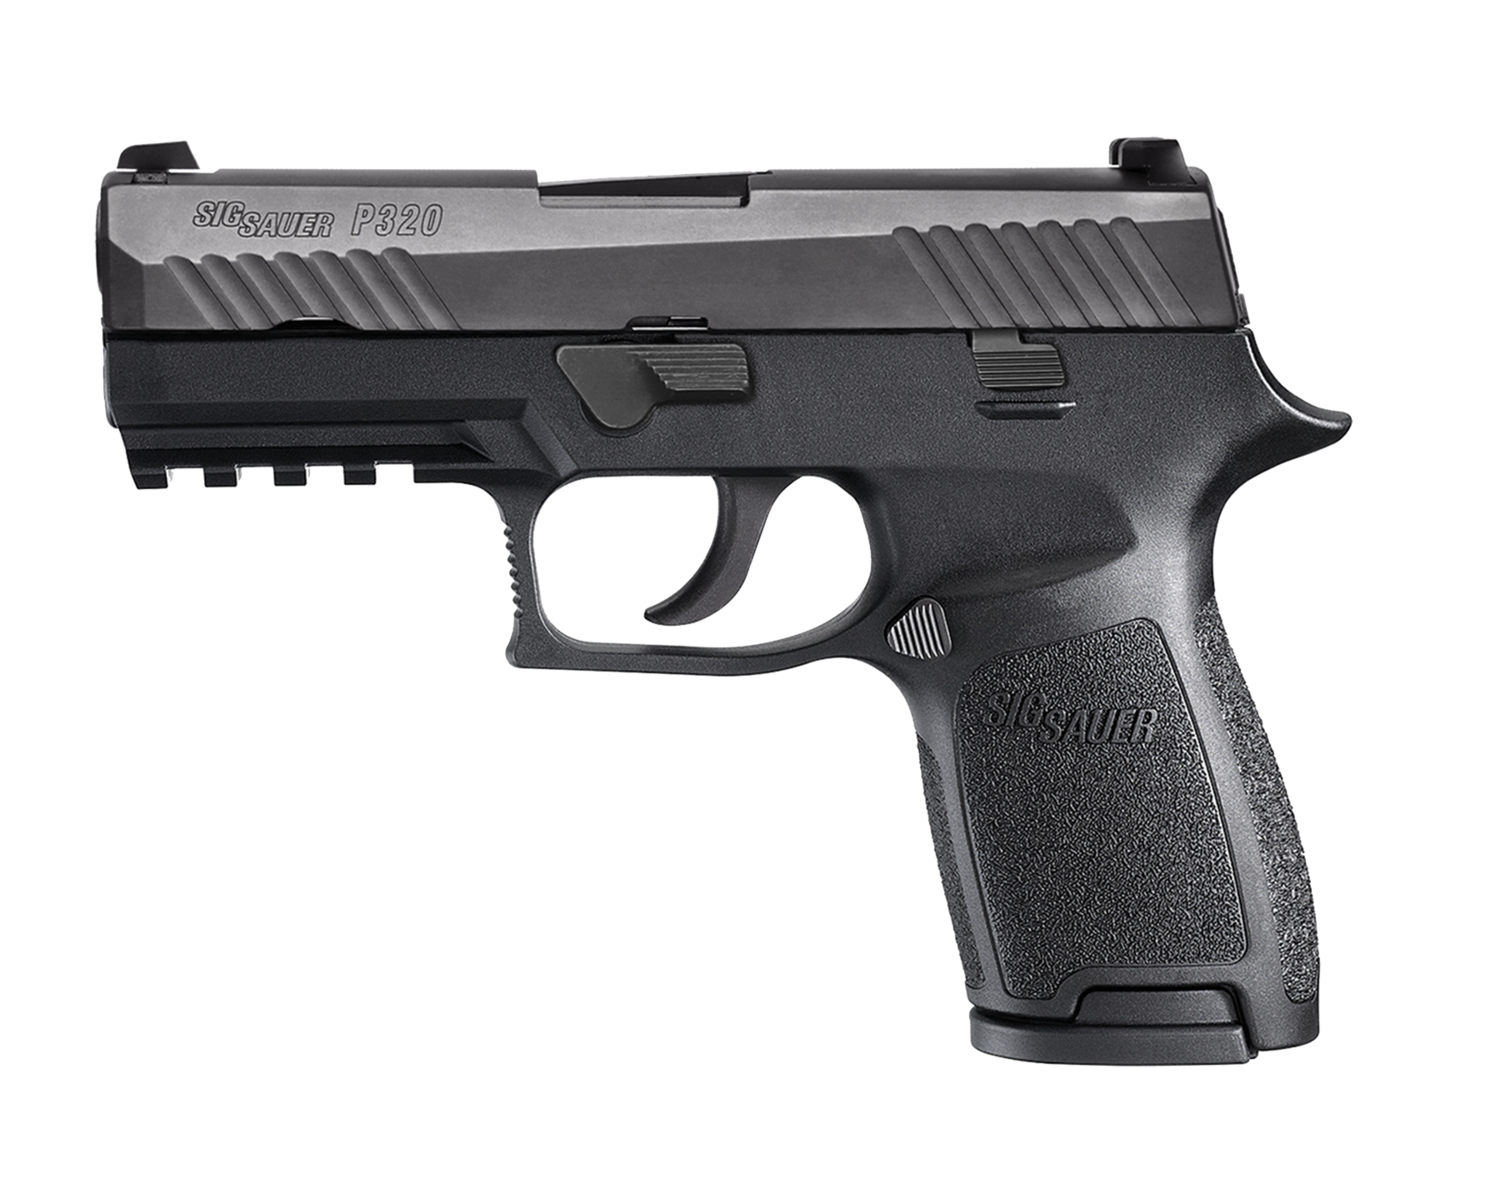 """80% Sig Sauer - P320 Carry Double 357 Sig 3.9"""" 10+1 - 2 Mags - Polymer Grip Black - Nitron Stainless Steel"""